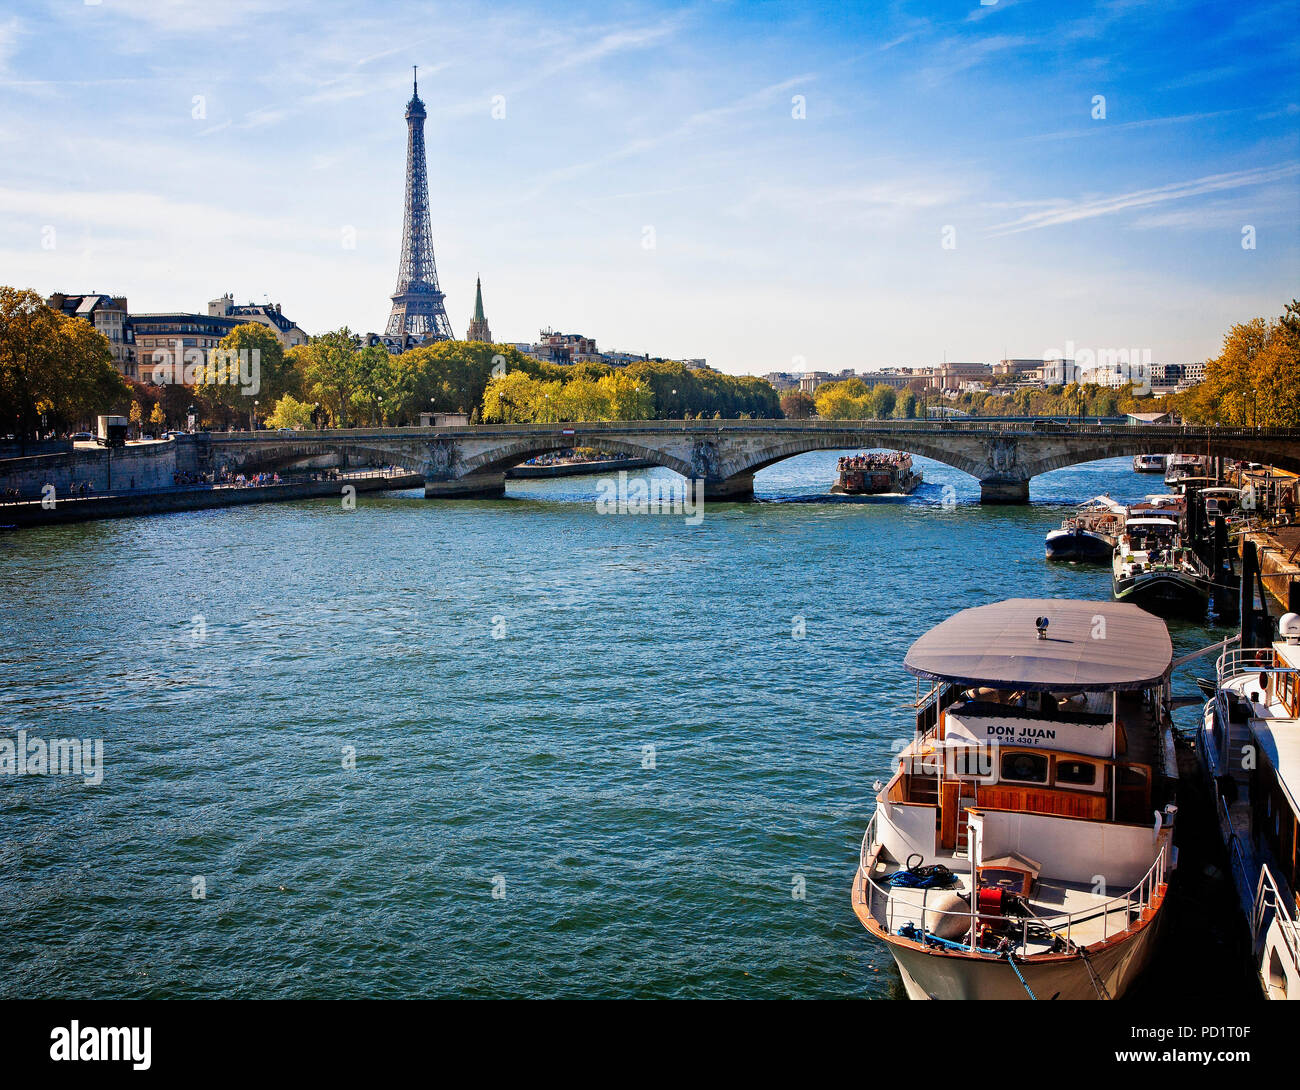 The Eiffel Tower dominates the Paris skyline as seen from the River Seine. - Stock Image